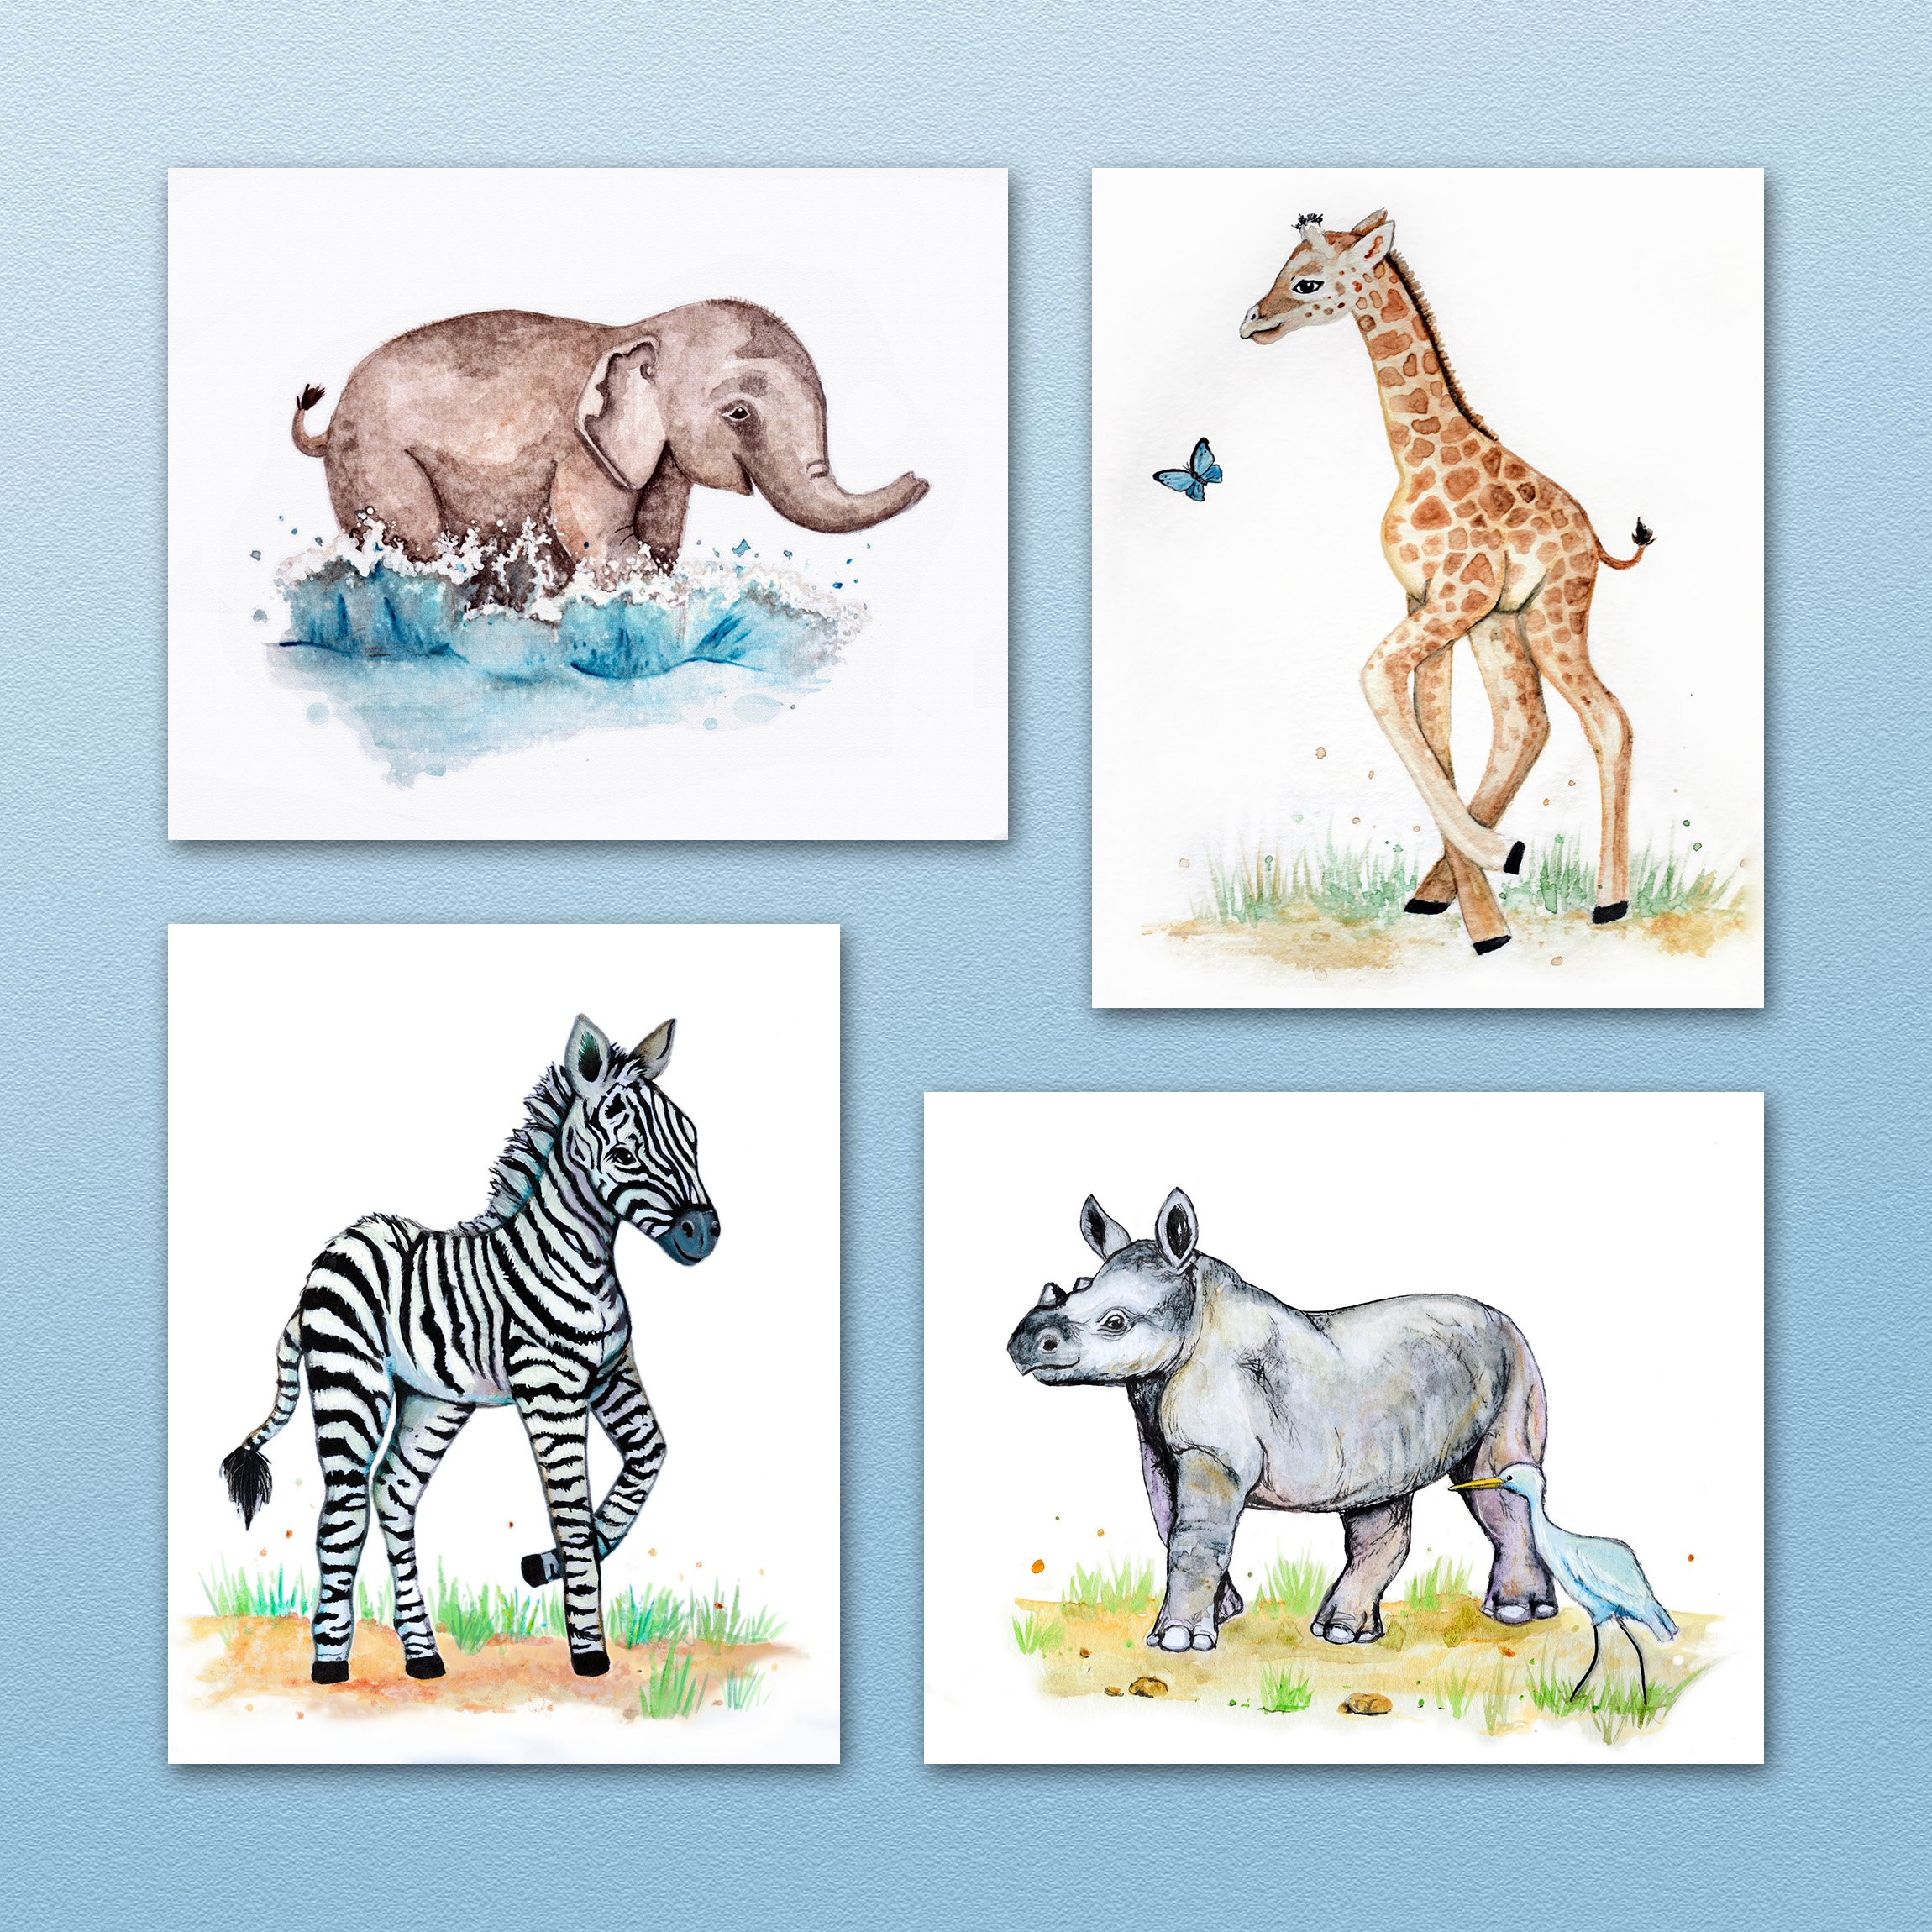 Painted Baby Safari Animals Art Prints. Home/Nursery Decor (8''x10'', (4) Set of Four) by Little Pig Studios